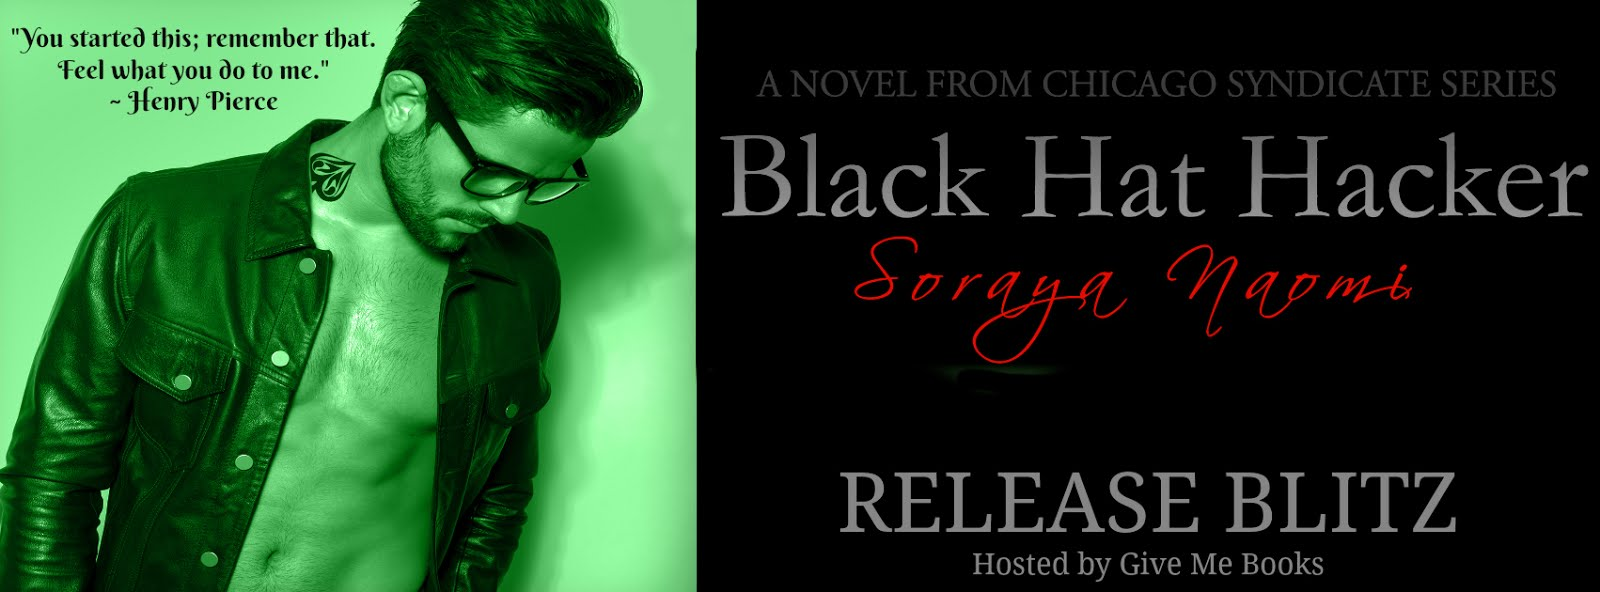 Black Hat Hacker Release Blitz